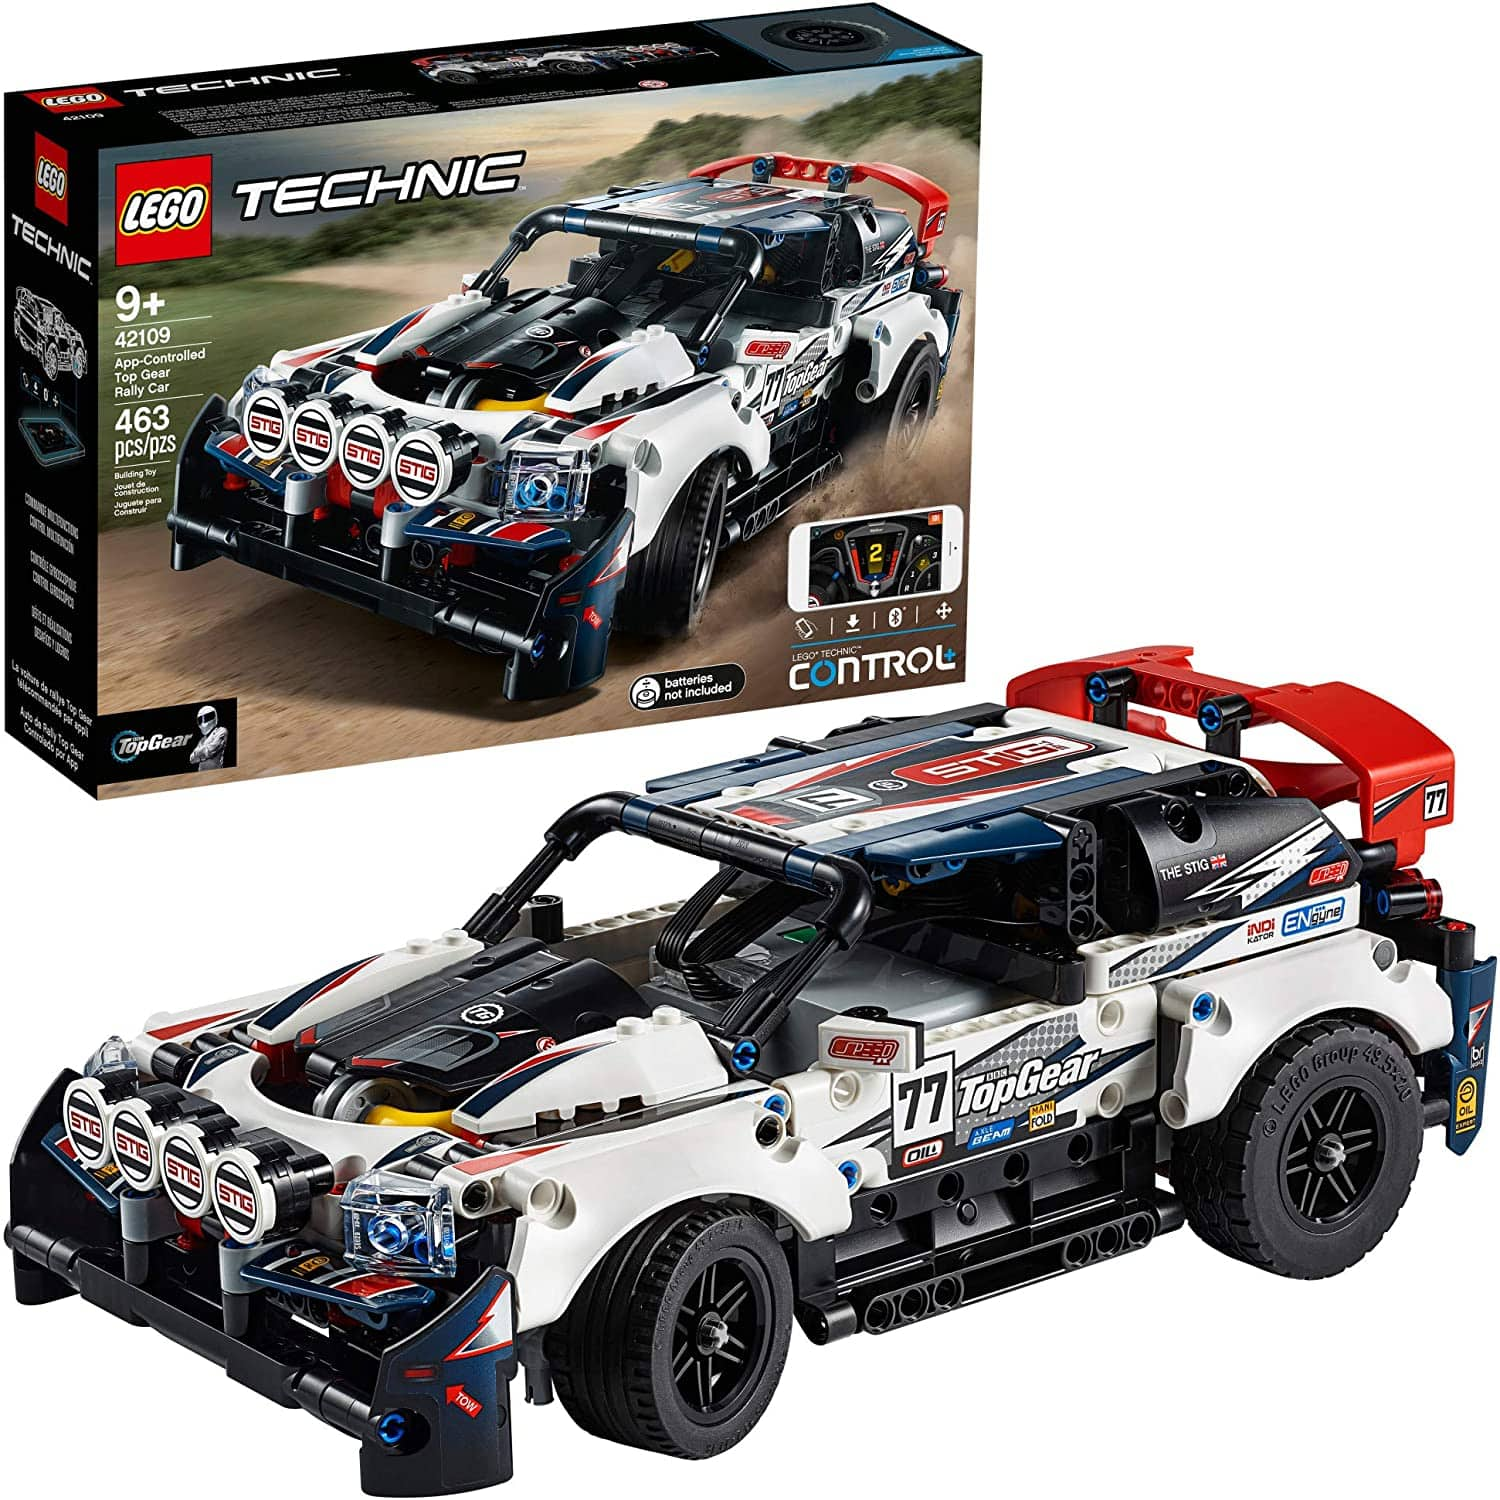 LEGO Technic App-Controlled Top Gear Rally Car 42109 Racing Toy Building Kit, New 2020 $104.99